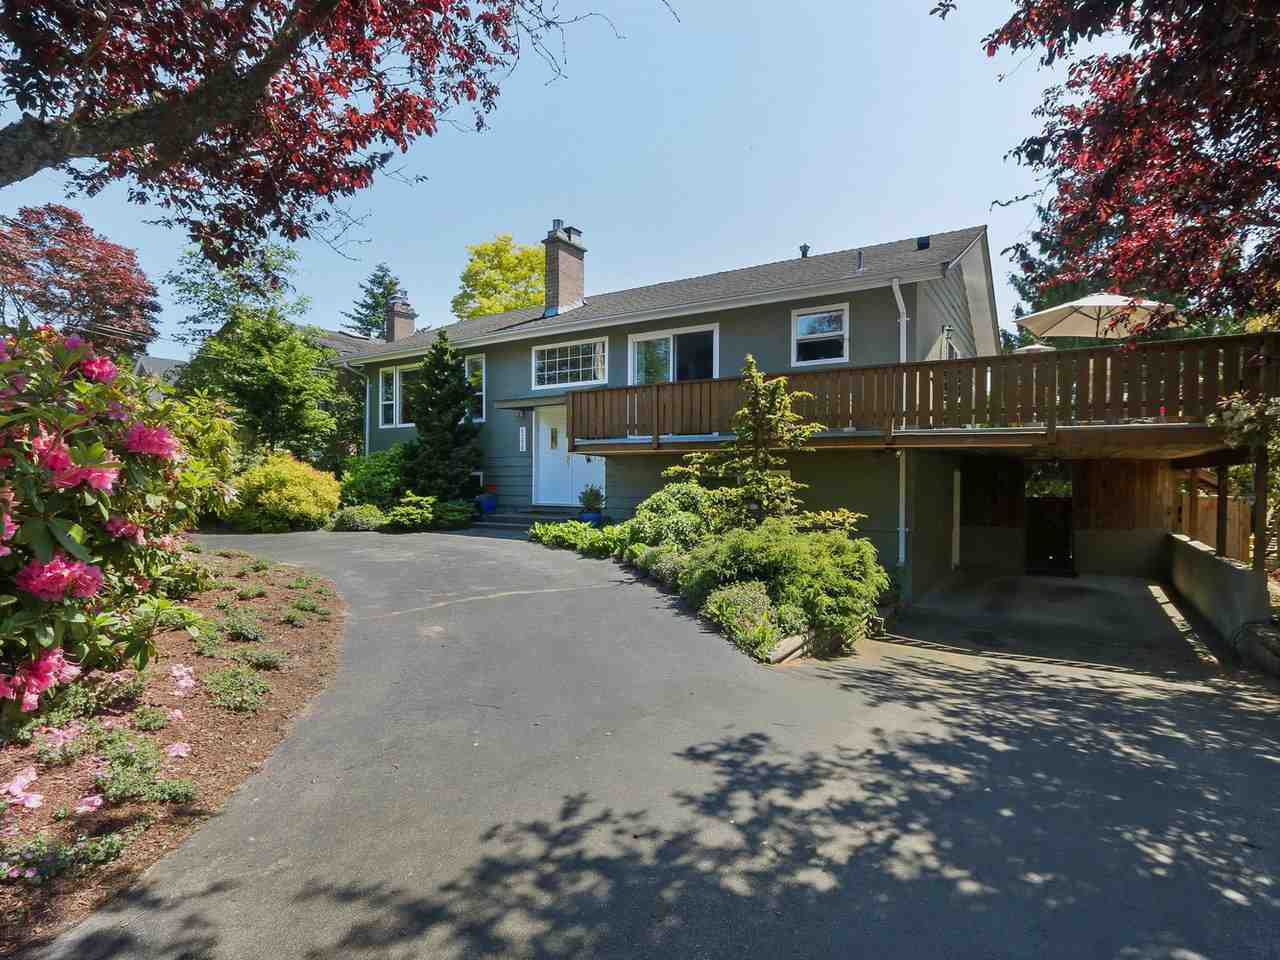 Main Photo: 5358 1A Avenue in Delta: Pebble Hill House for sale (Tsawwassen)  : MLS®# R2373832